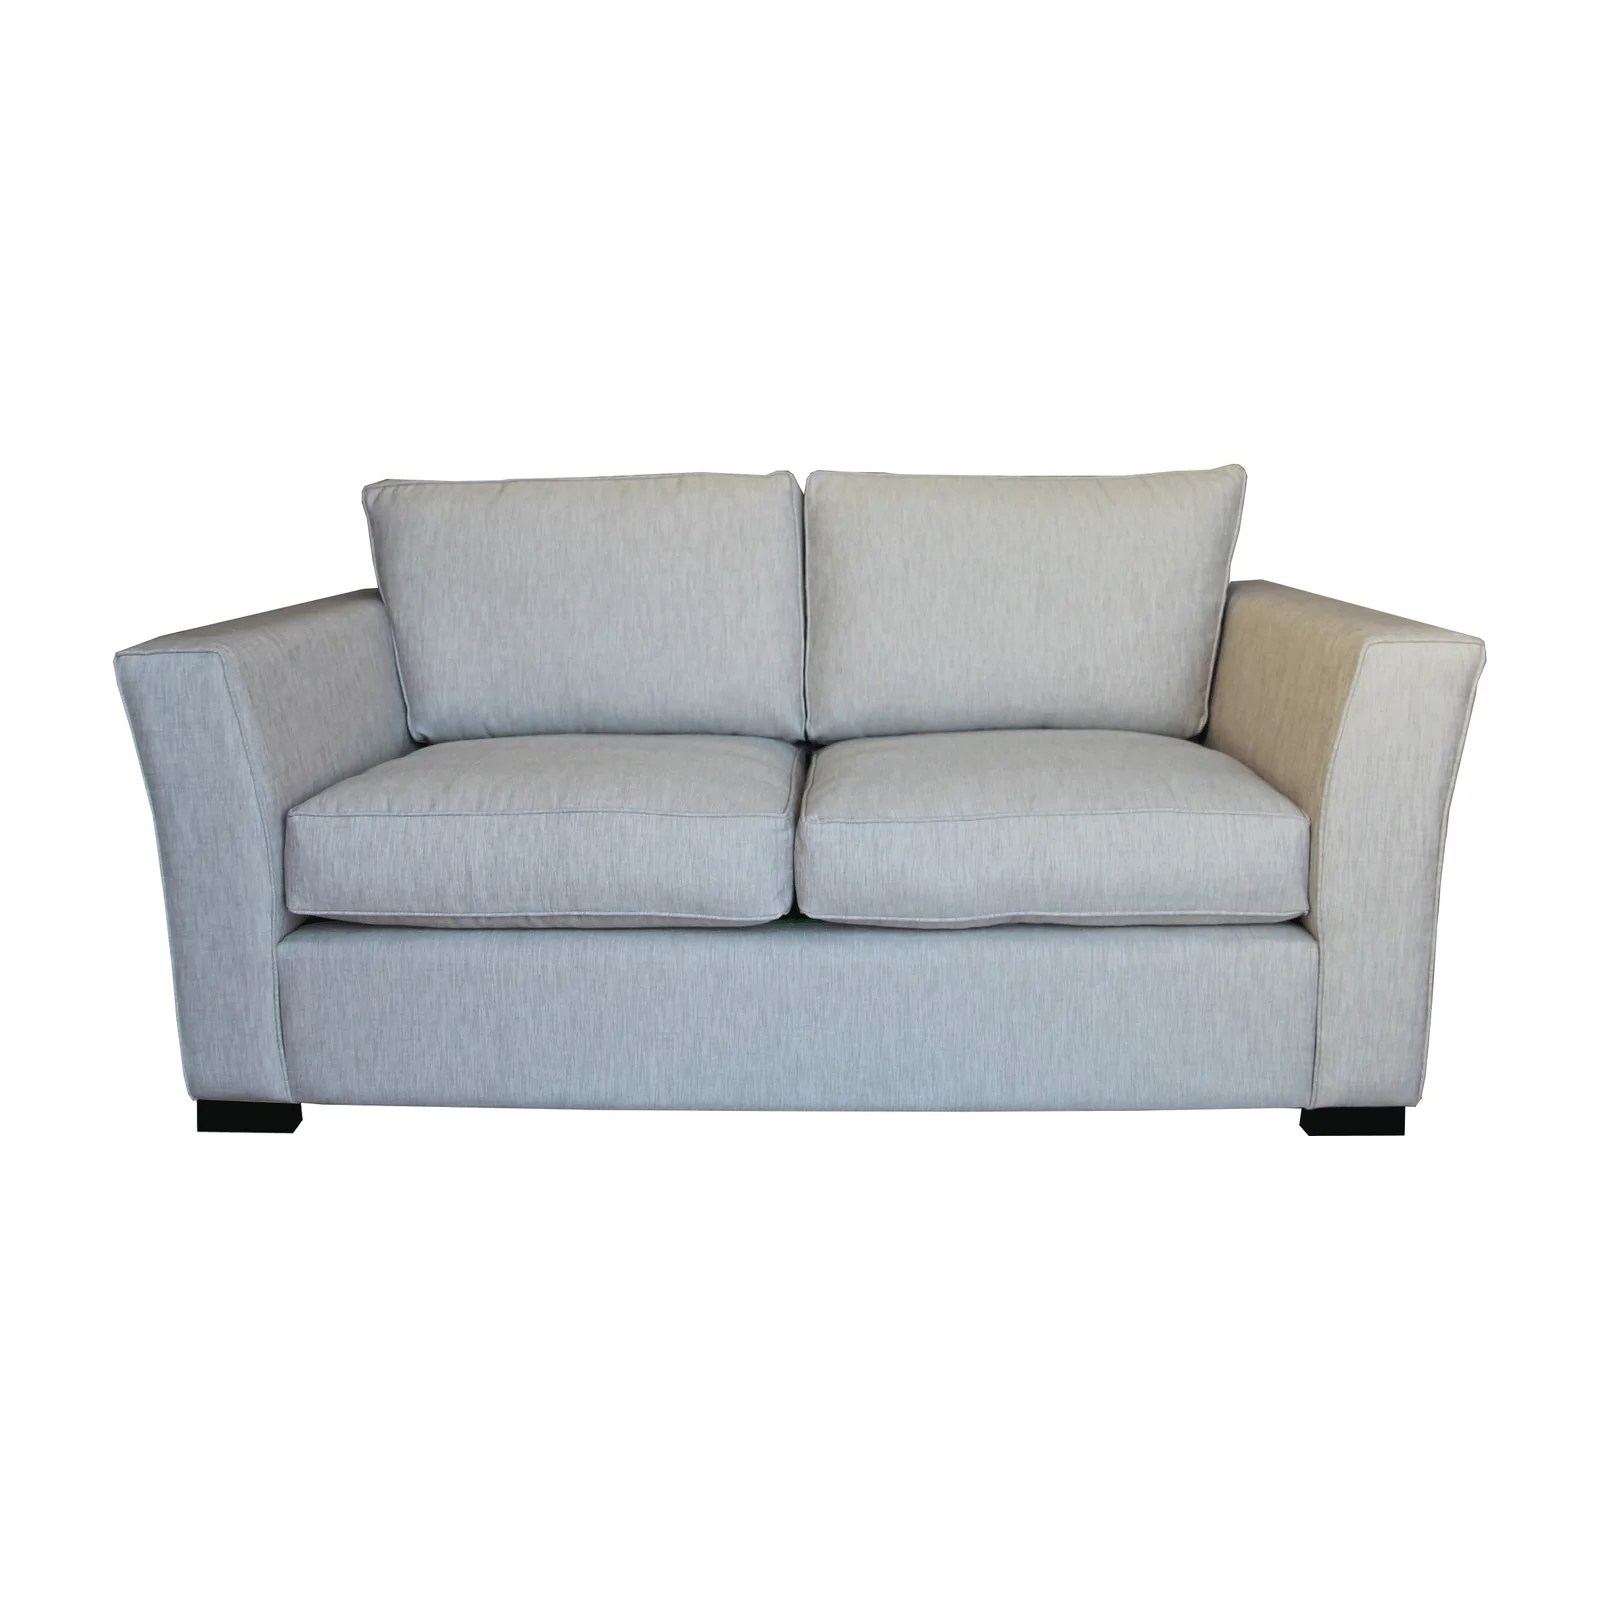 Grey Sofa Nz Windsor 3 2 5 Seater Lounge Suite Nz Made Greenslades Furniture